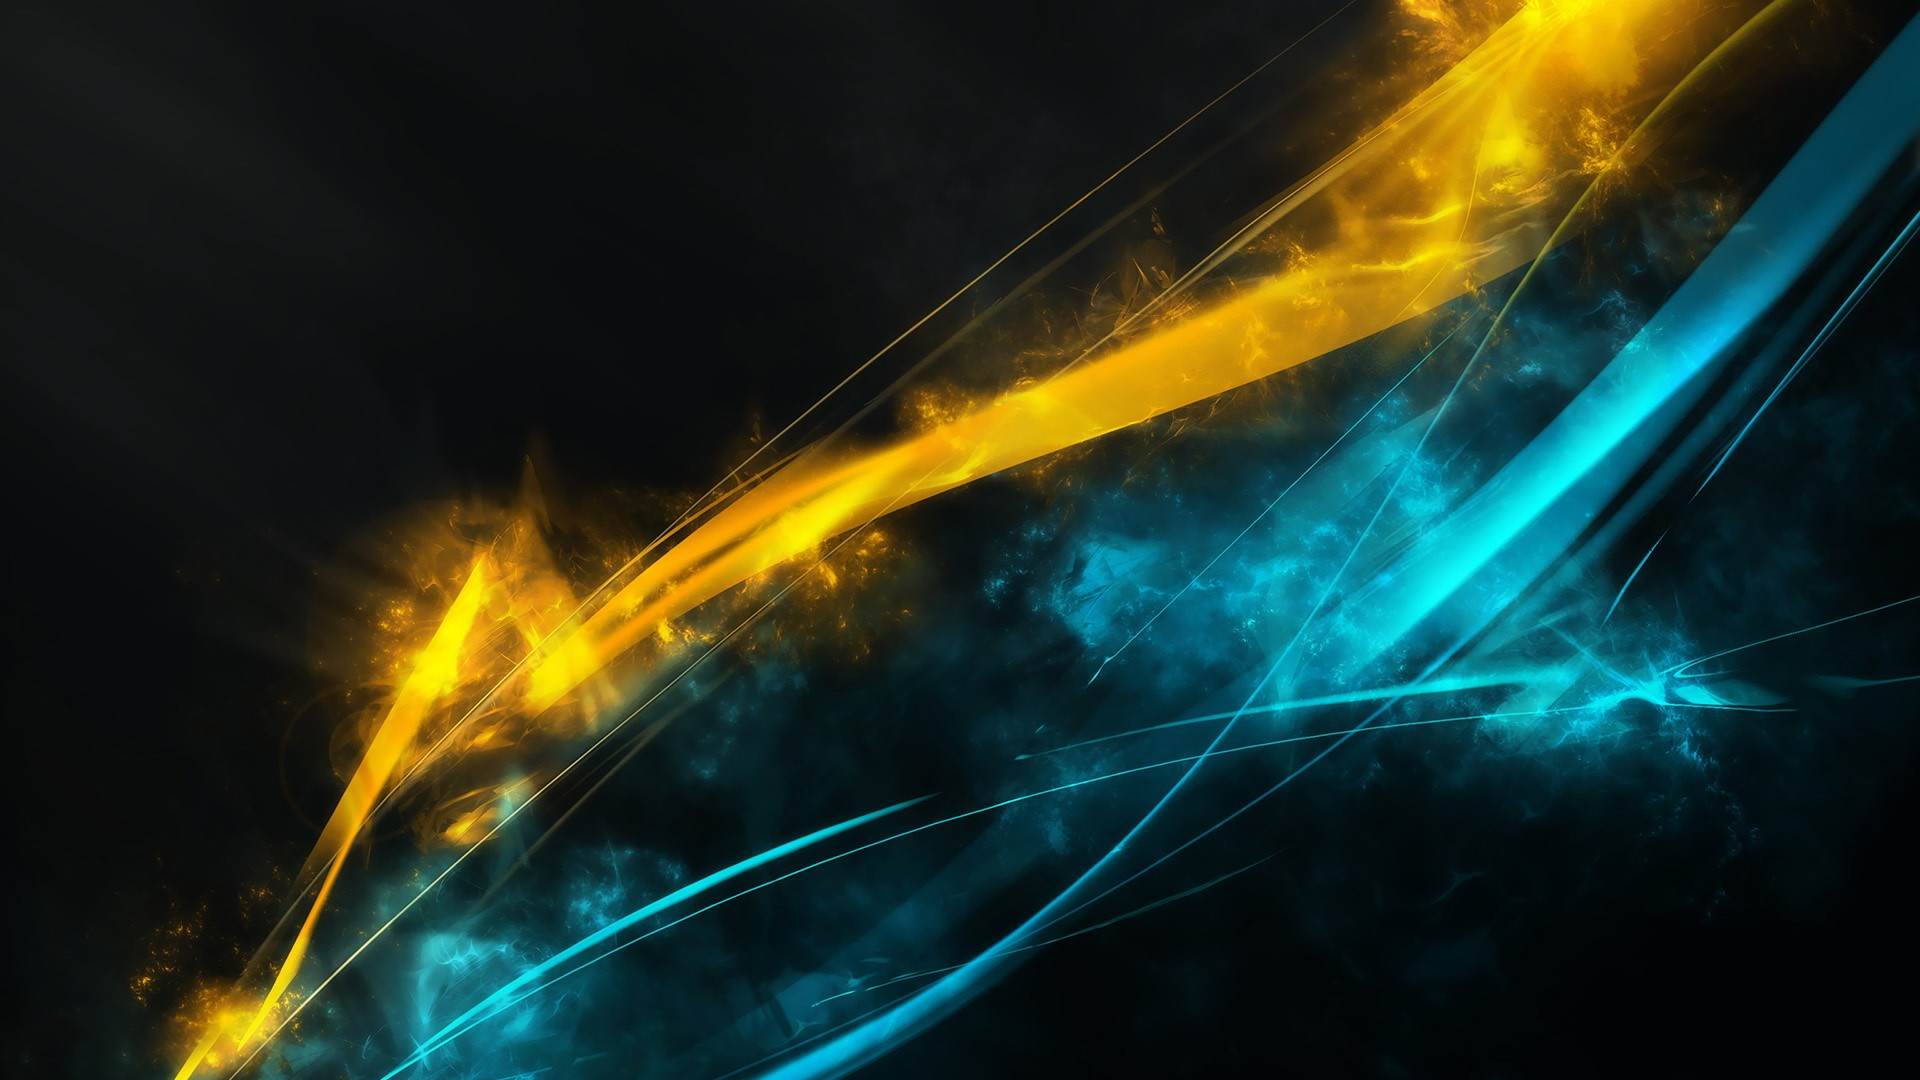 Abstract Full HD Wallpaper and Background Image ...